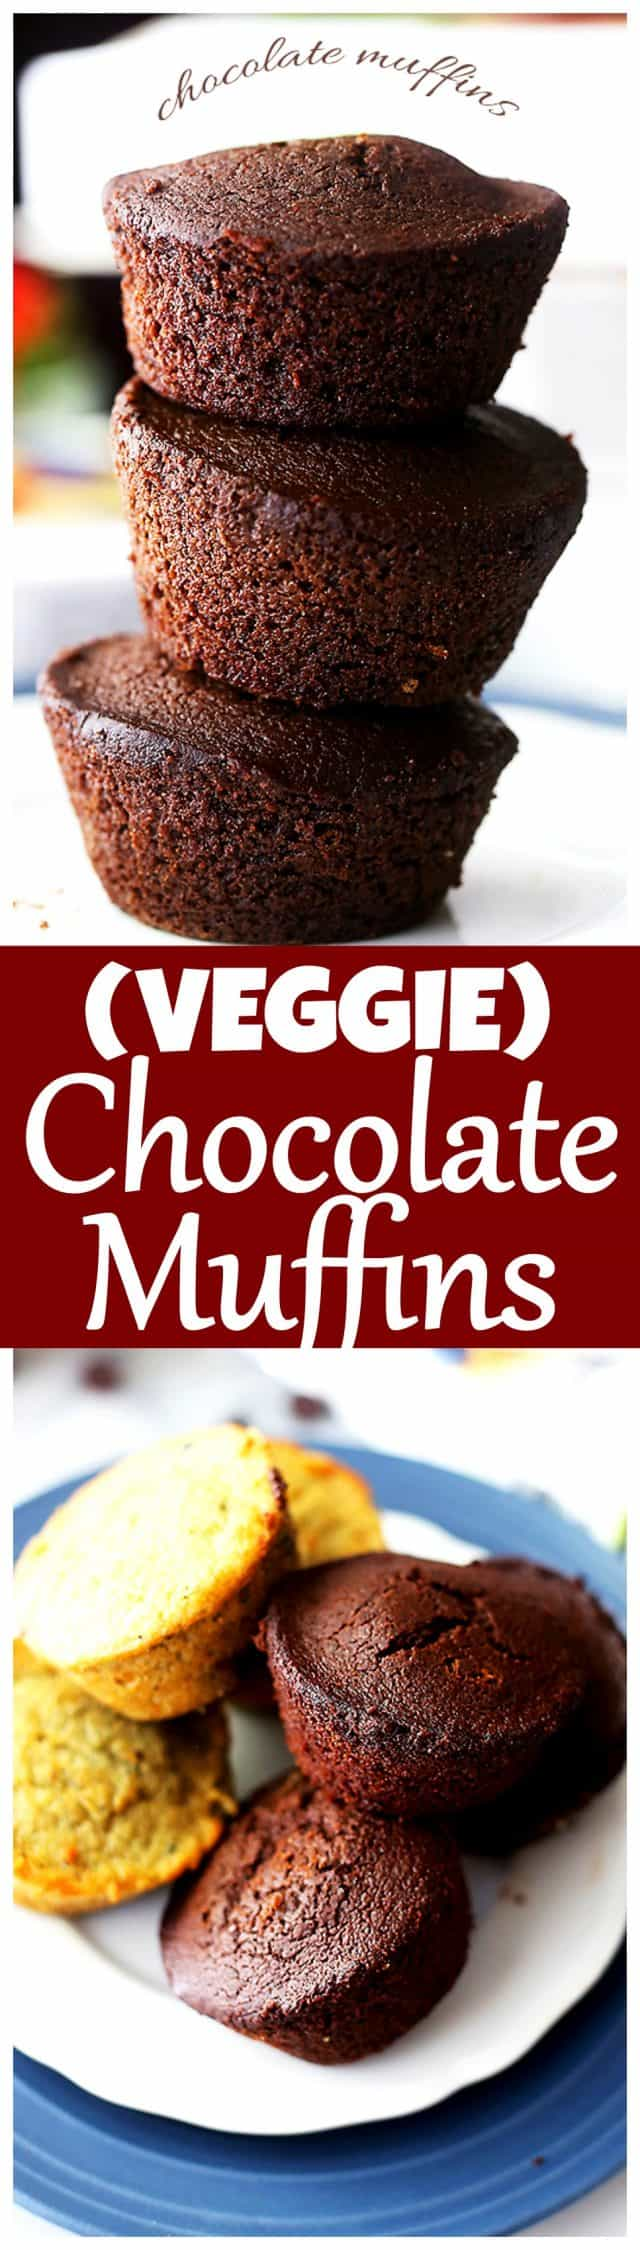 VEGGIE CHOCOLATE MUFFINS + more foods made with clean and simple ingredients! @Garden Lites #HookedOnVeggies #ad